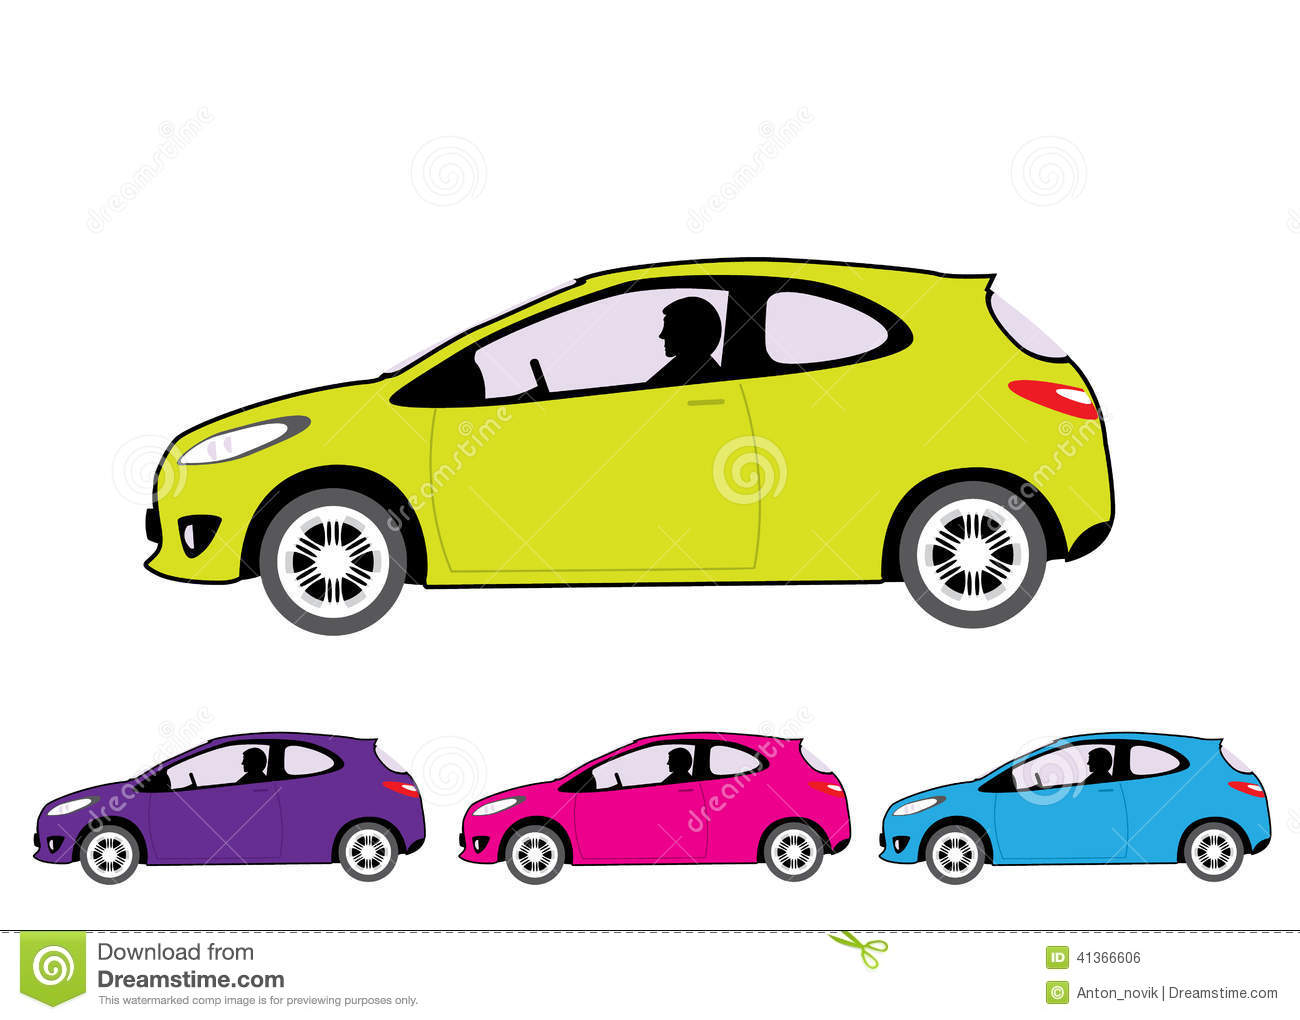 car clip art illustrations - photo #11